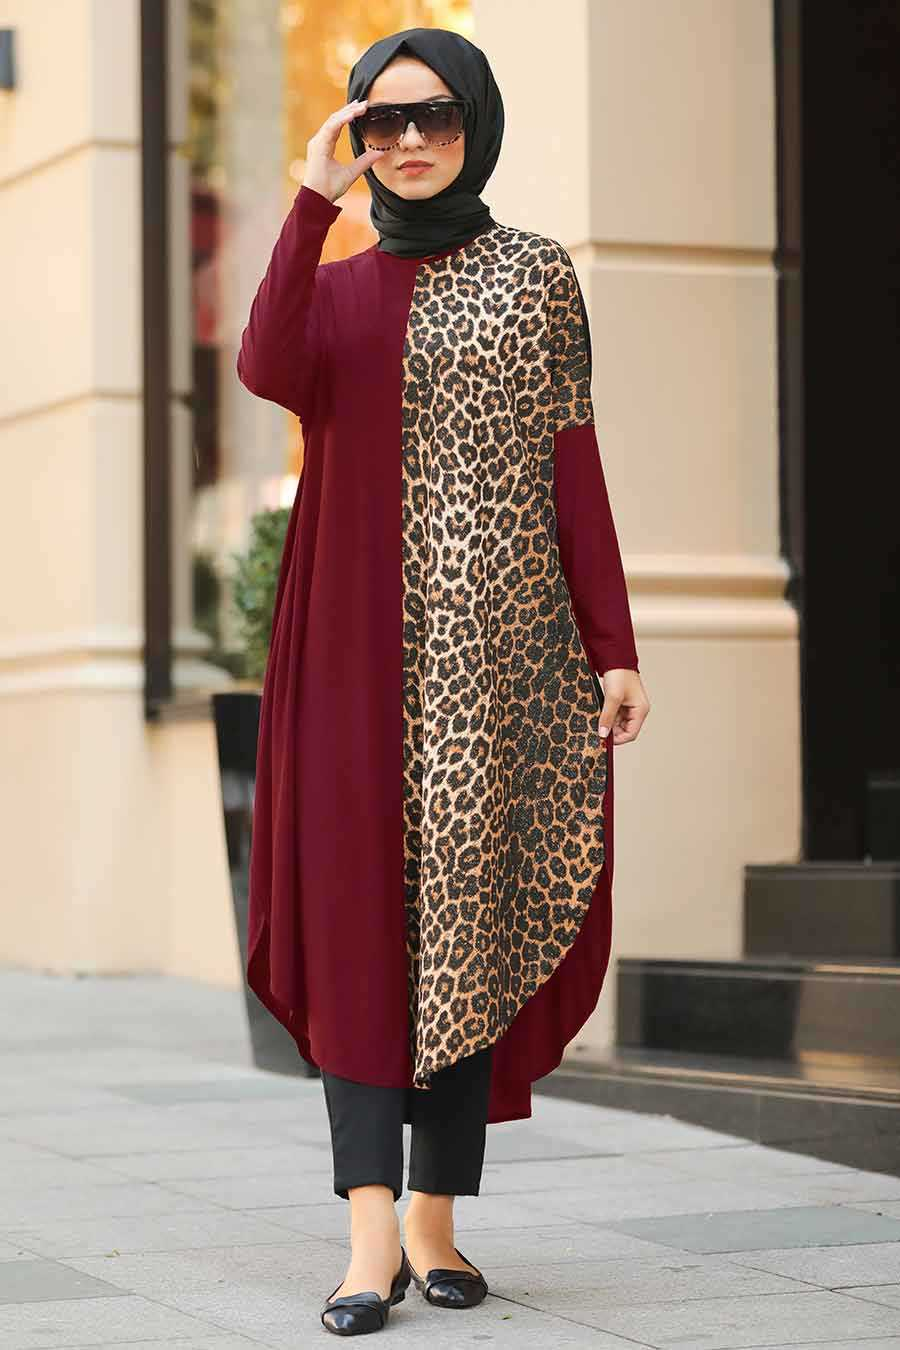 Lopared Patterned Claret Red Hijab Tunic 4968BR